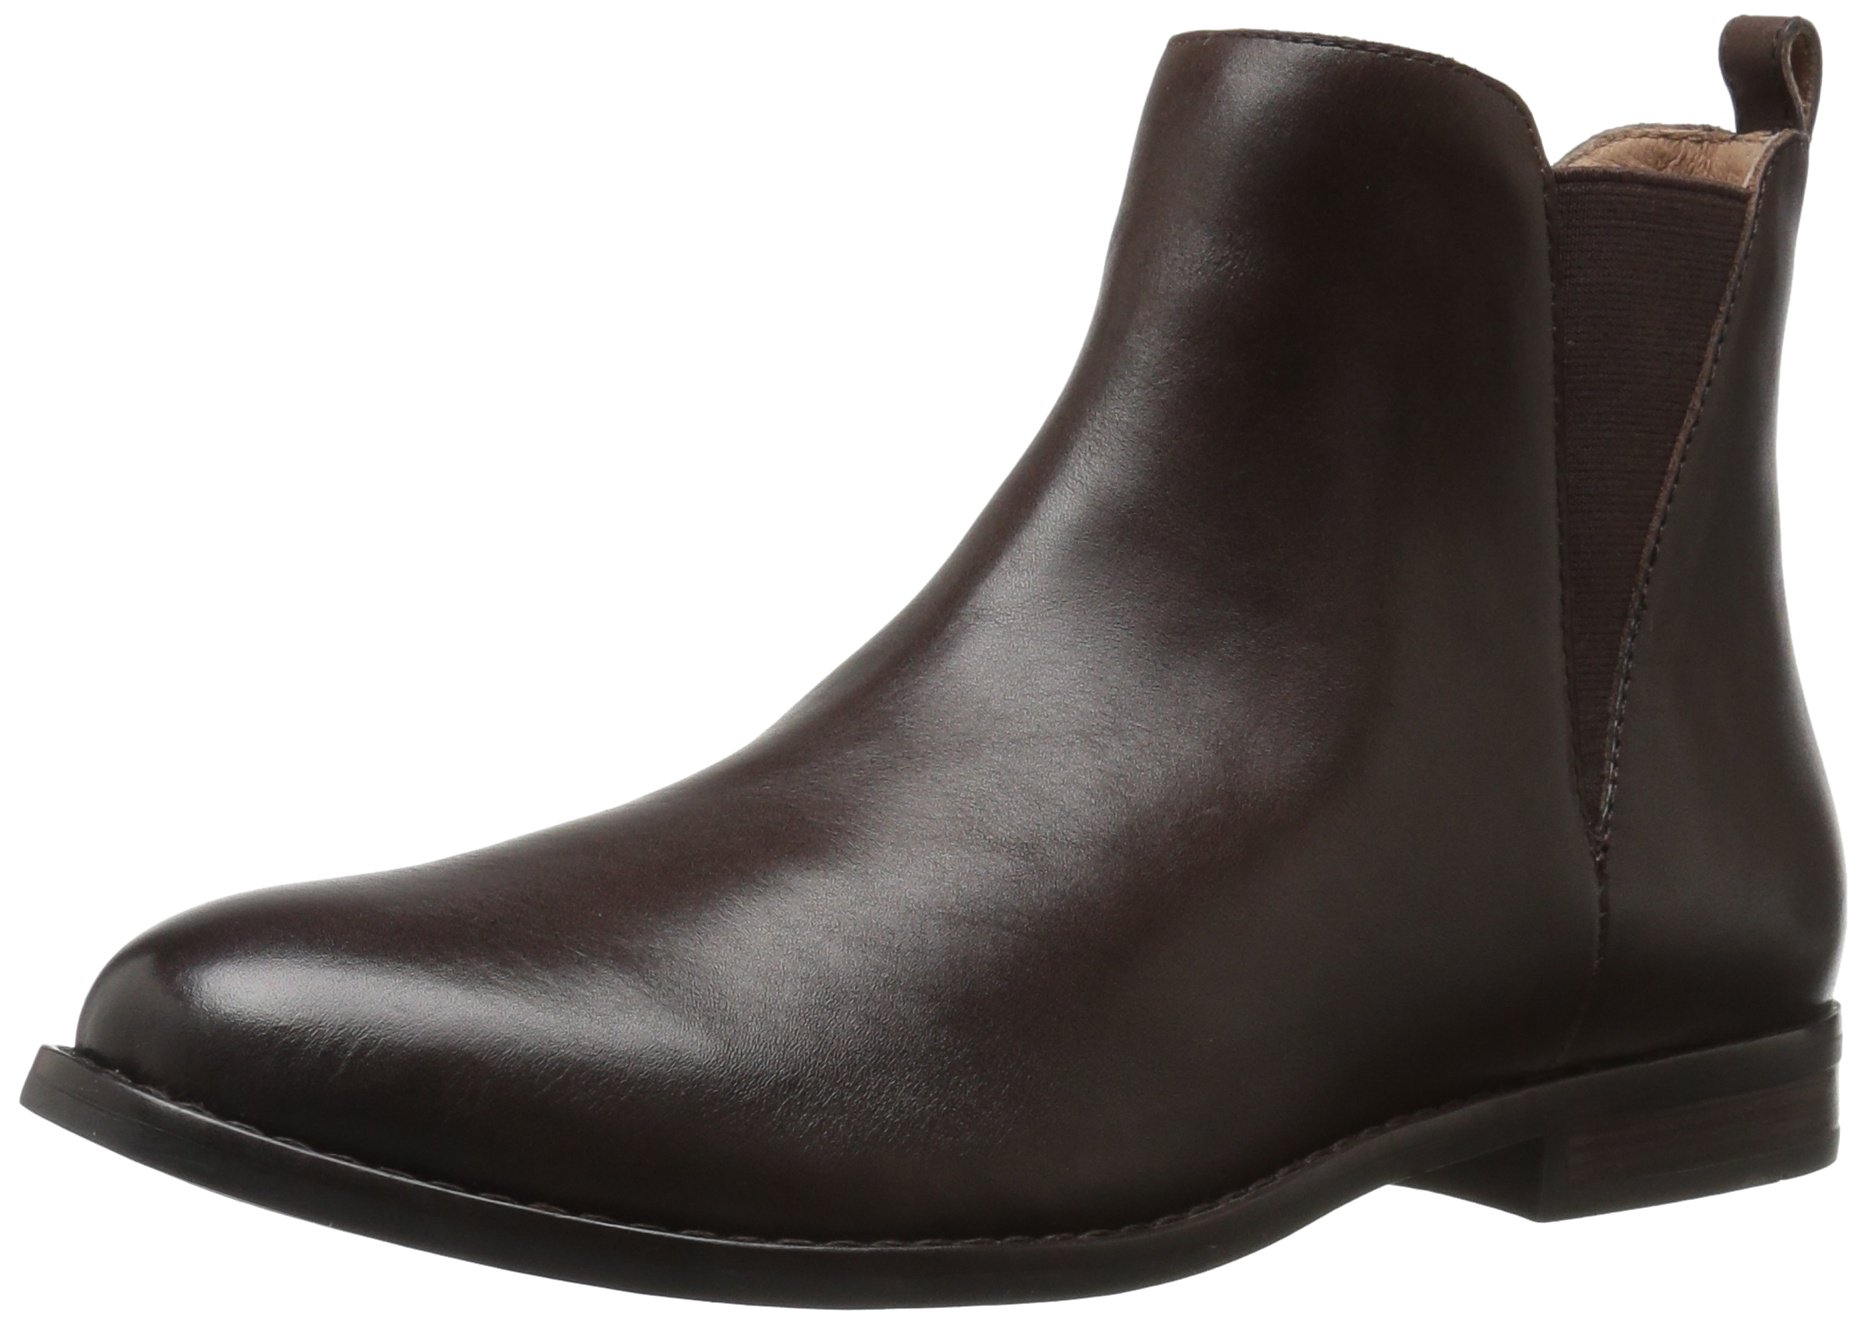 206 Collective Women's Ballard Chelsea Ankle Boot, Chocolate Brown, 8.5 B US